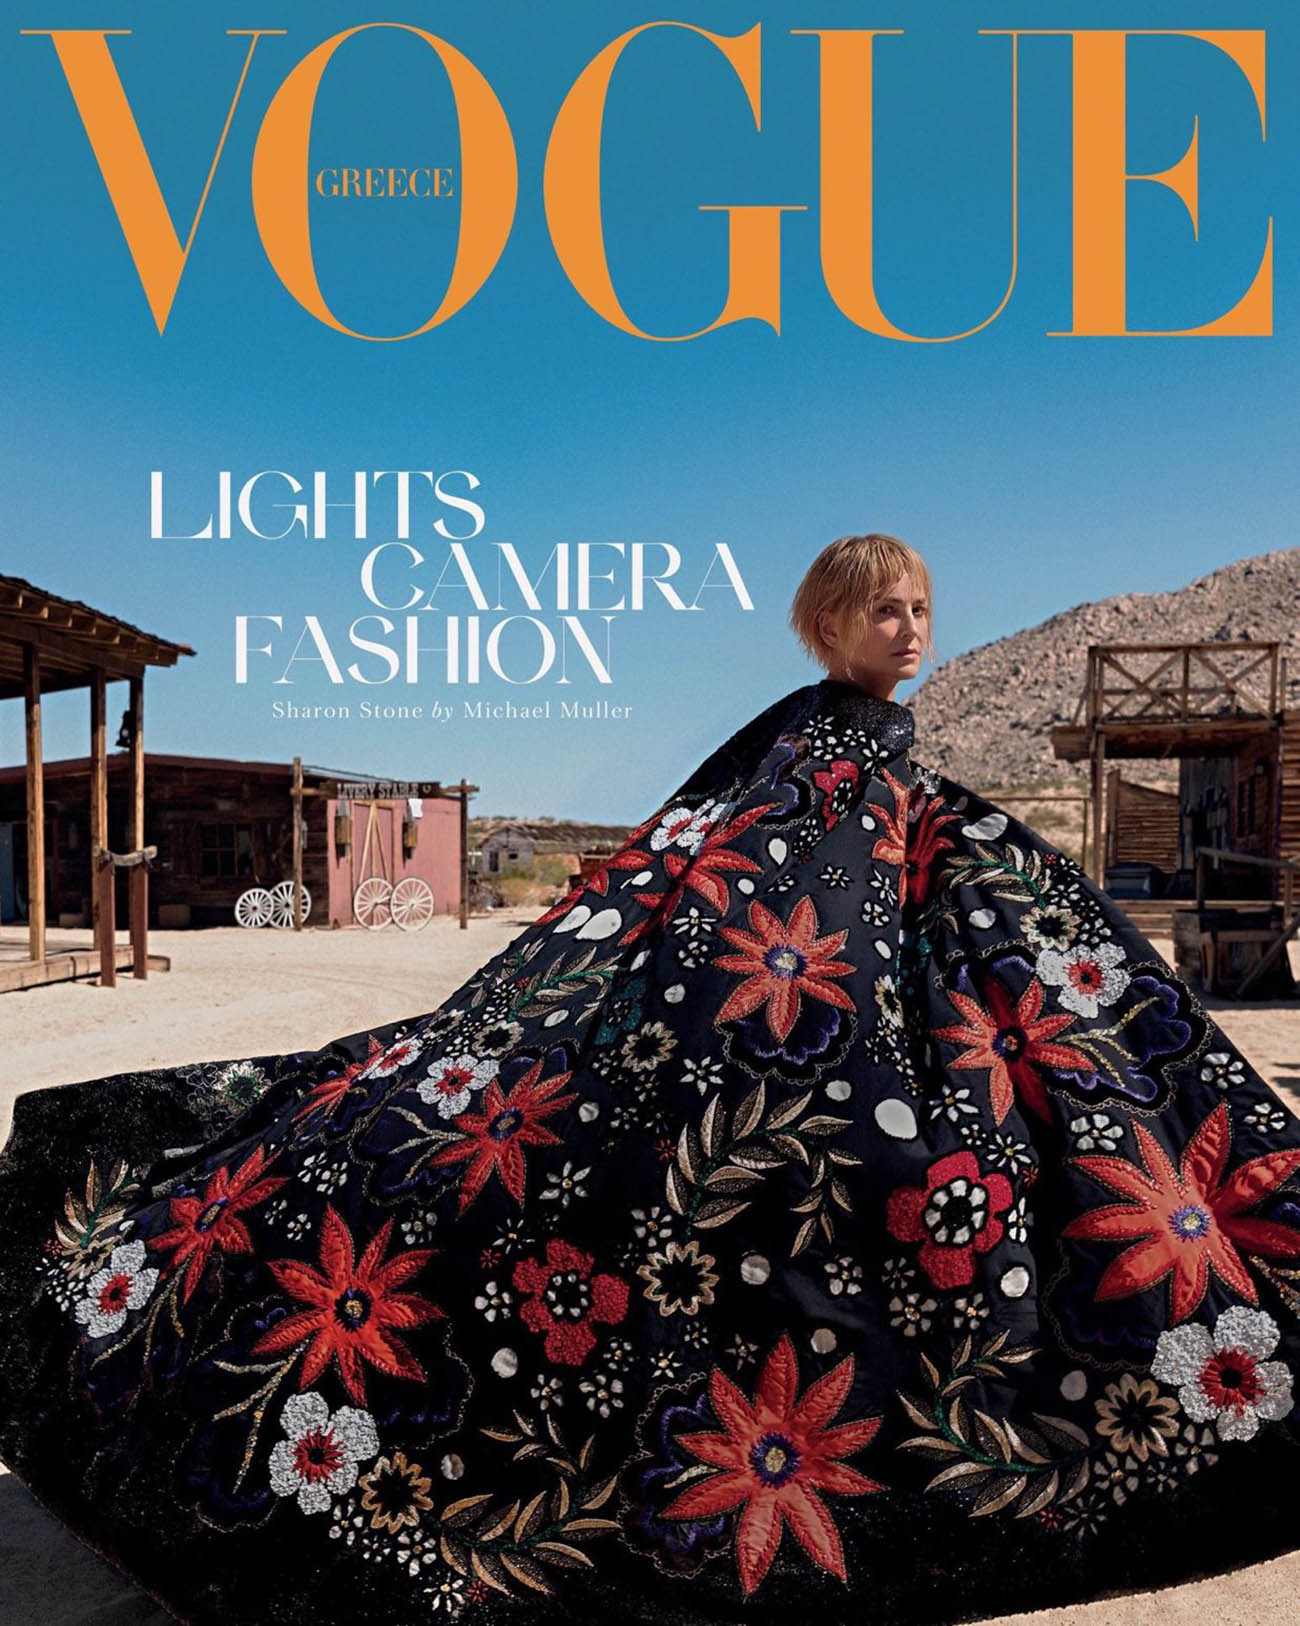 Sharon Stone covers Vogue Greece November 2020 by Michael Muller